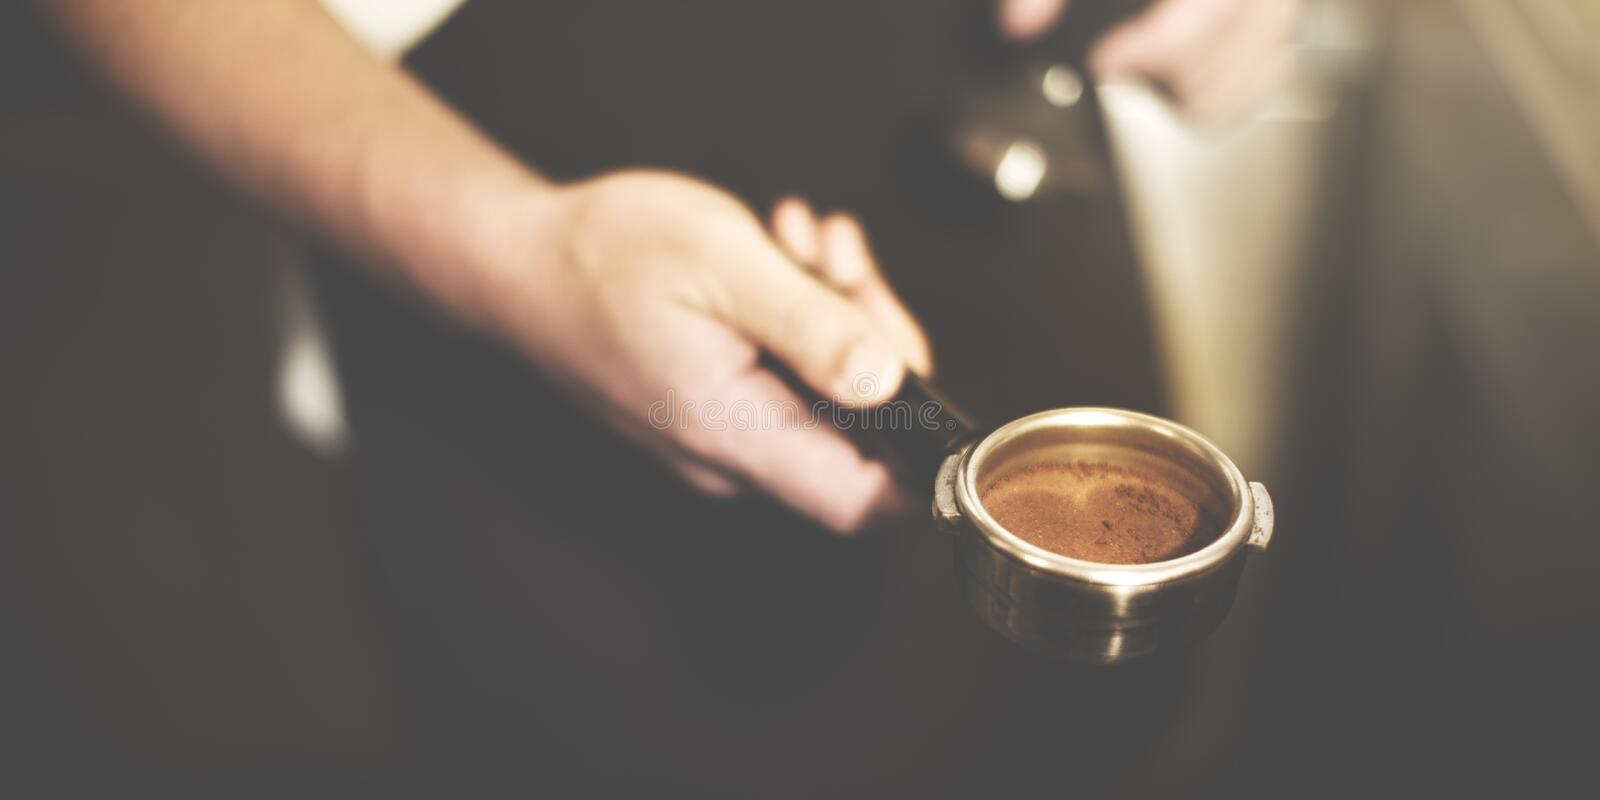 Barista Coffee Brewing Grind Professional Concept stock photo